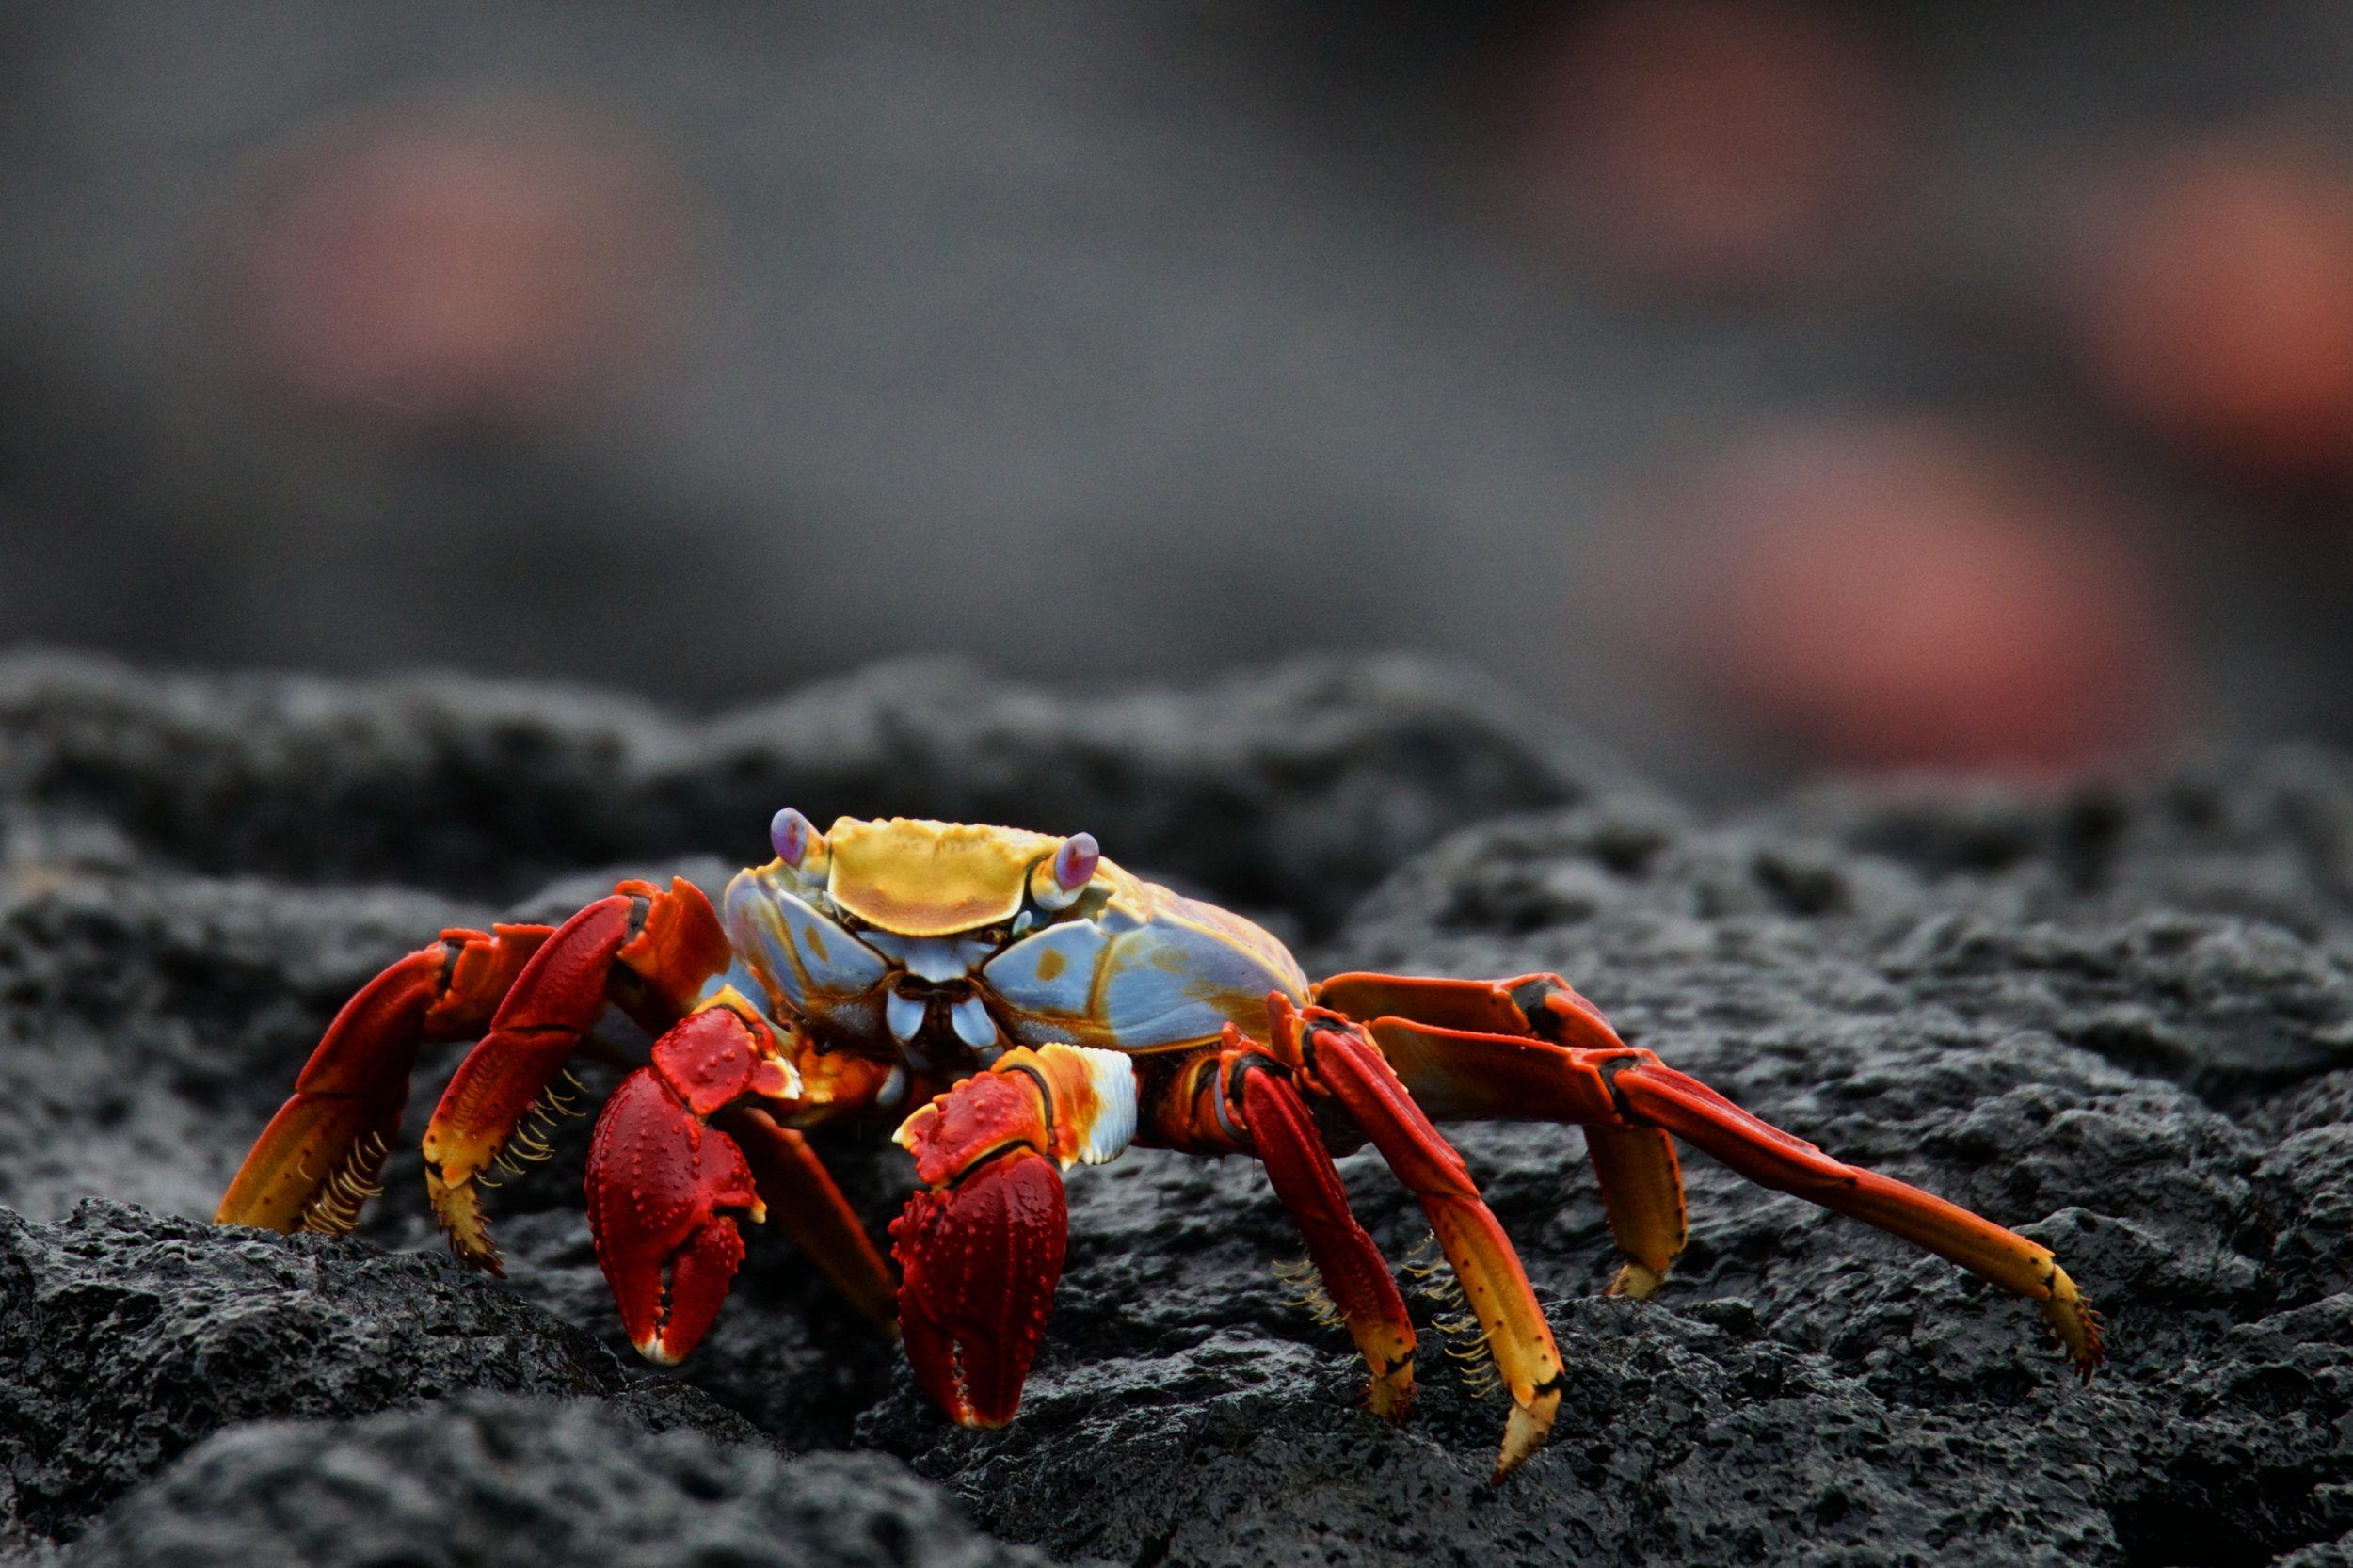 A close up of a Grapsus grapsus crab in Galapagos